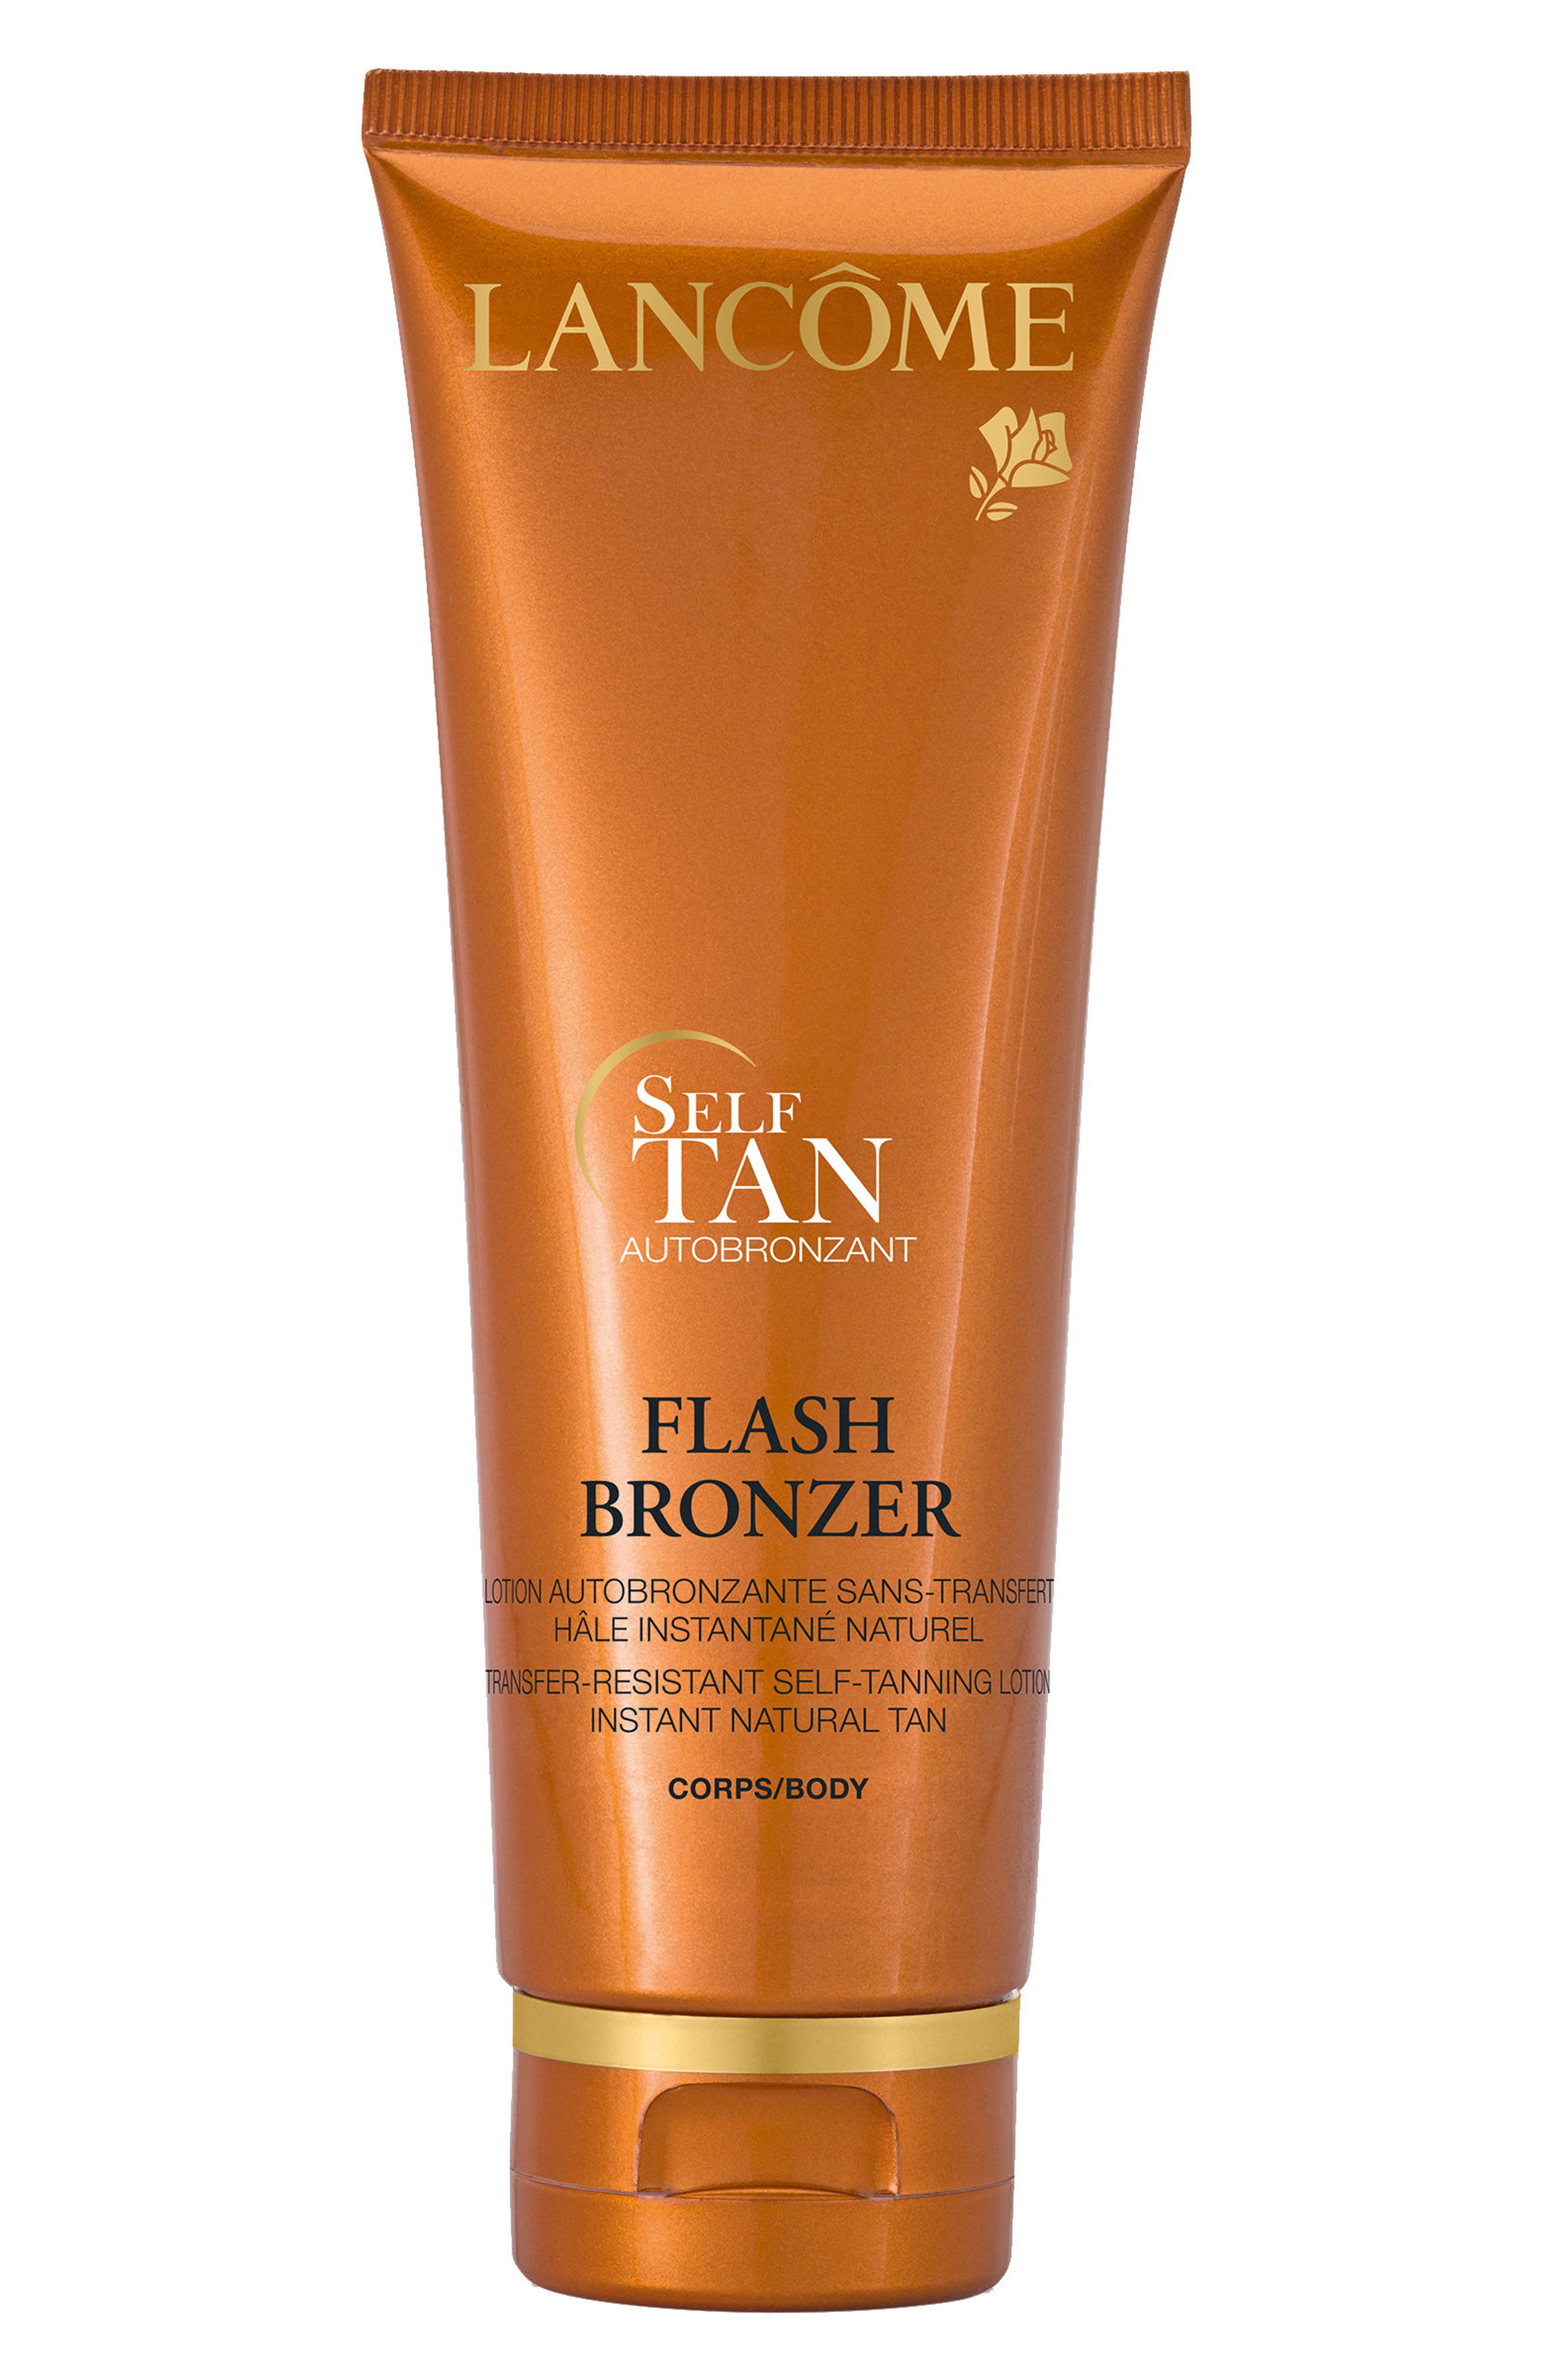 Main Image - Lancôme Flash Bronzer Tinted Self-Tanning Gel with Pure Vitamin E